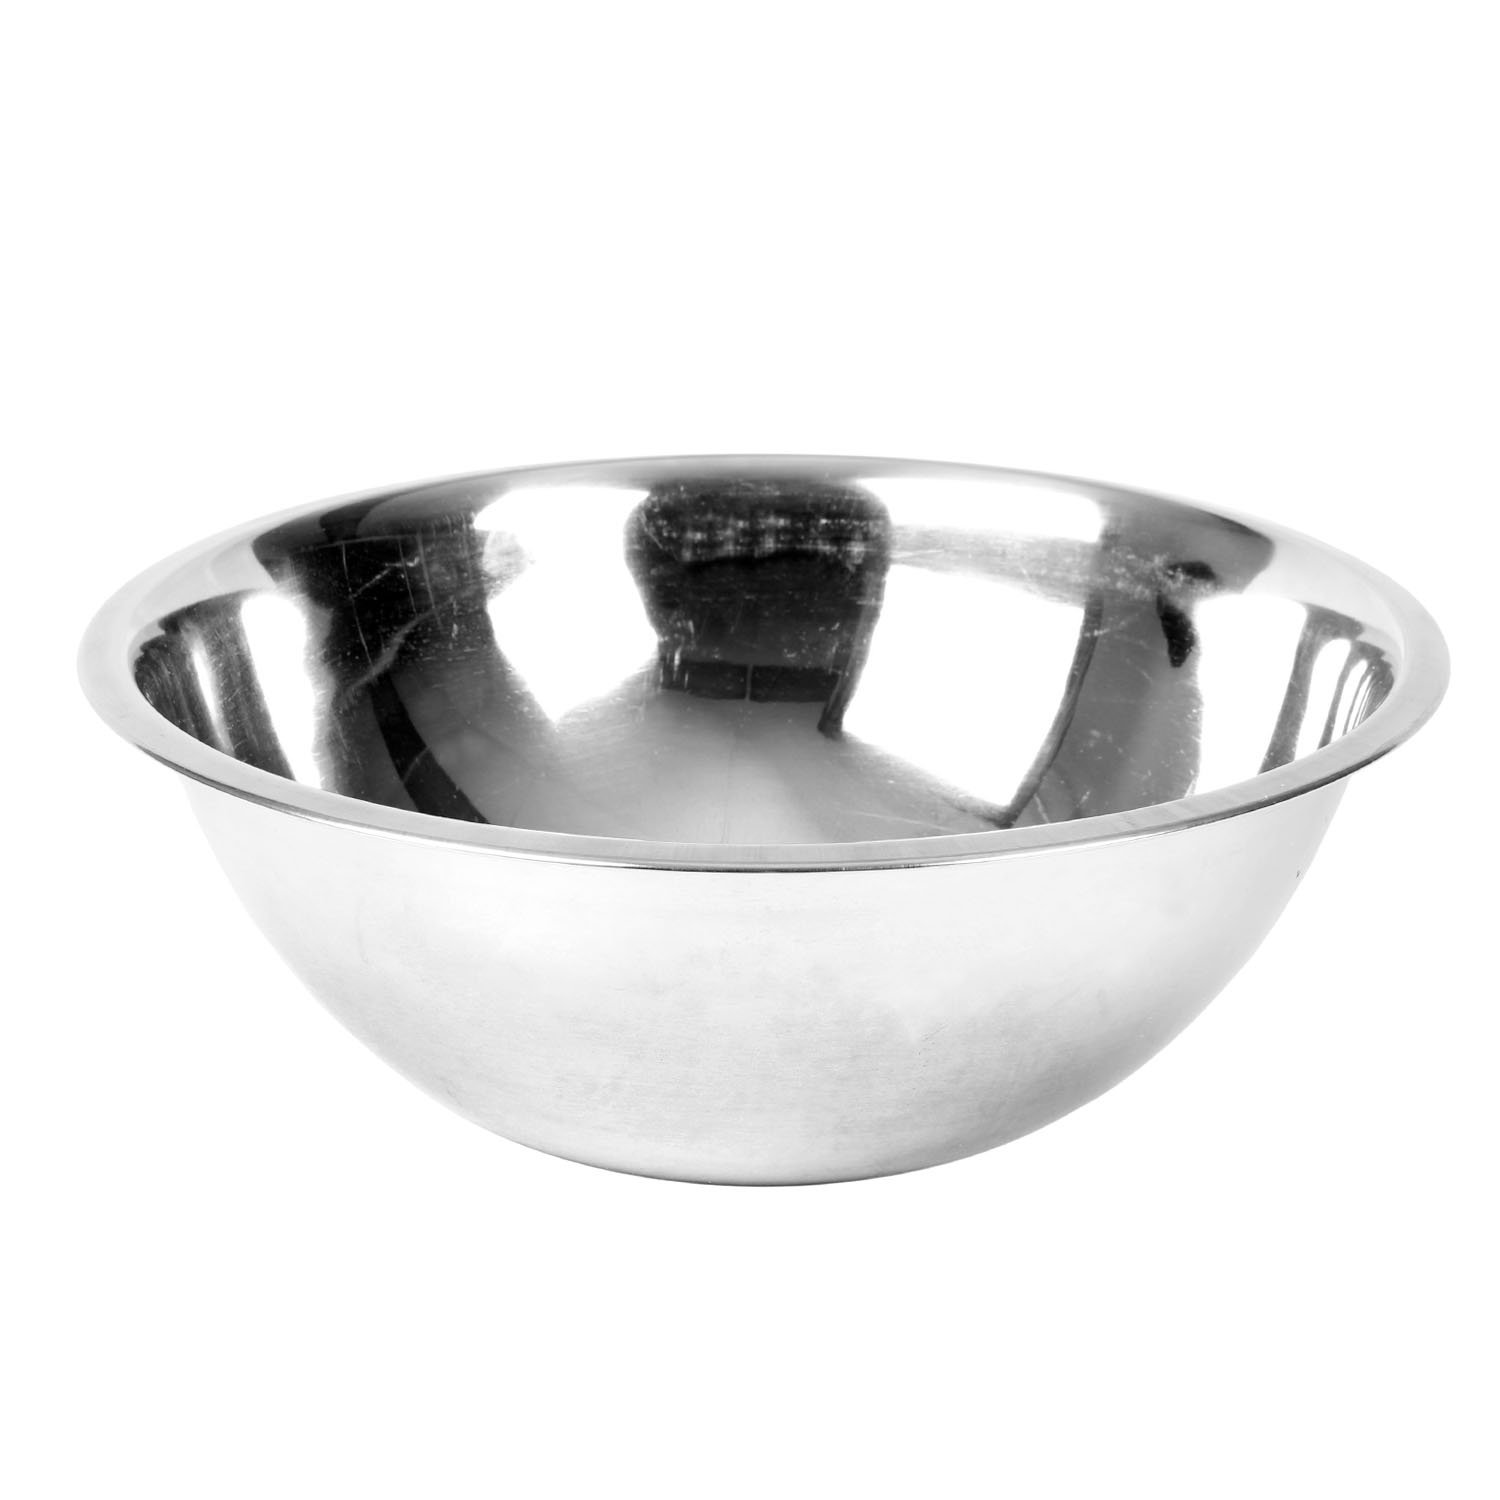 Excellante Mixing Bowl, Heavy Duty, Stainless Steel, 22 gauge, 5 quart, 0.8 mm